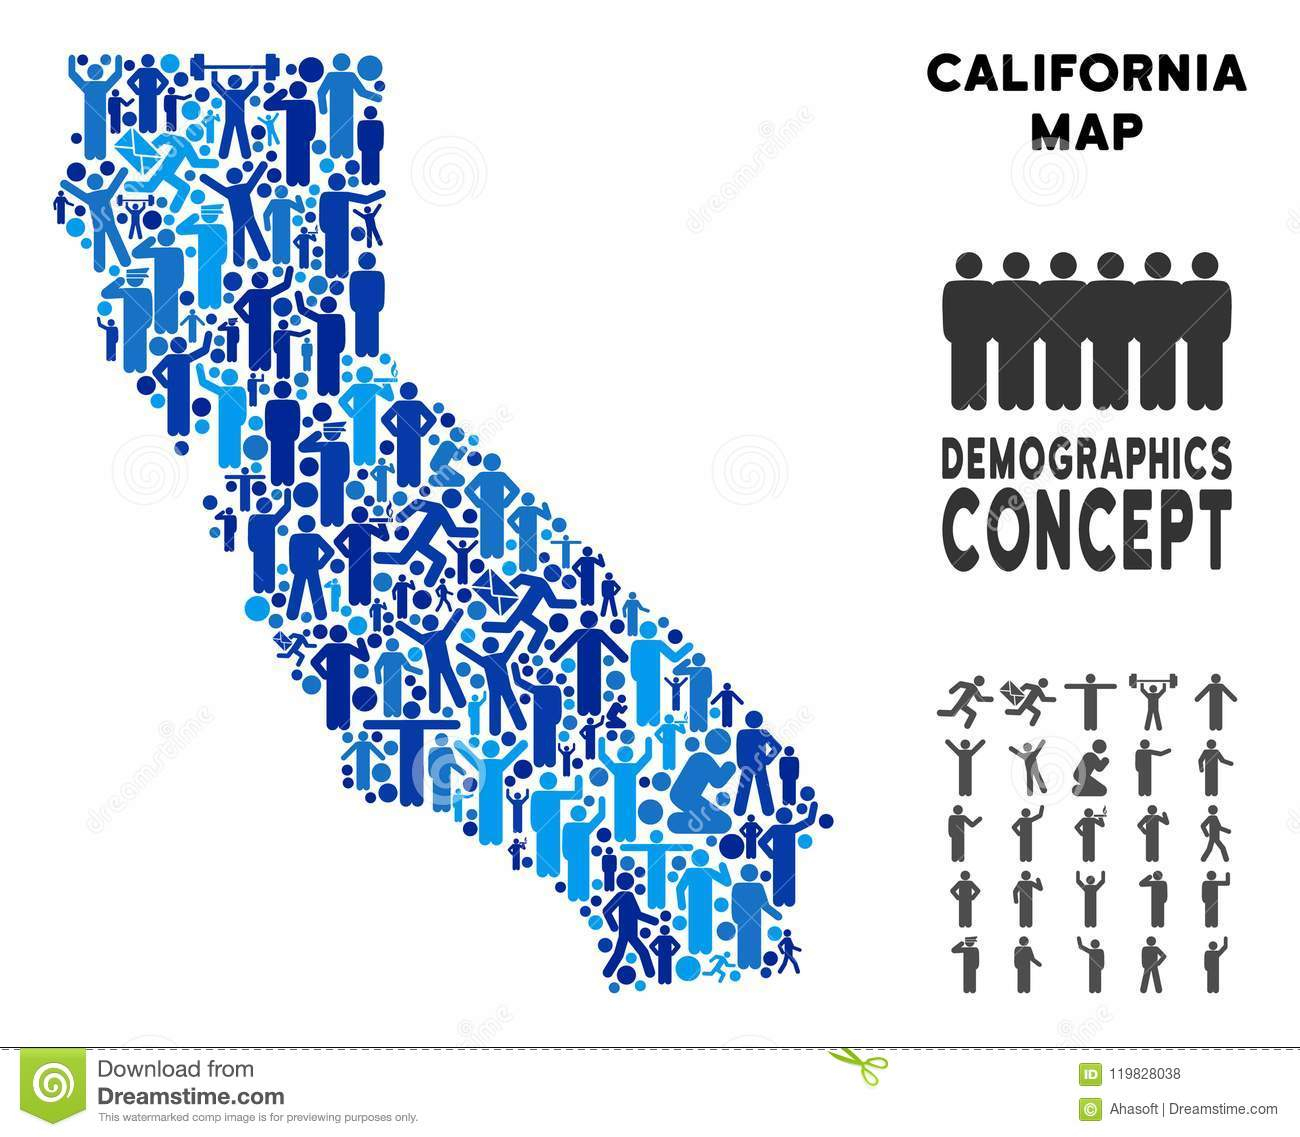 Demographics California Map Stock Vector - Illustration Of Nation - California Demographics Map